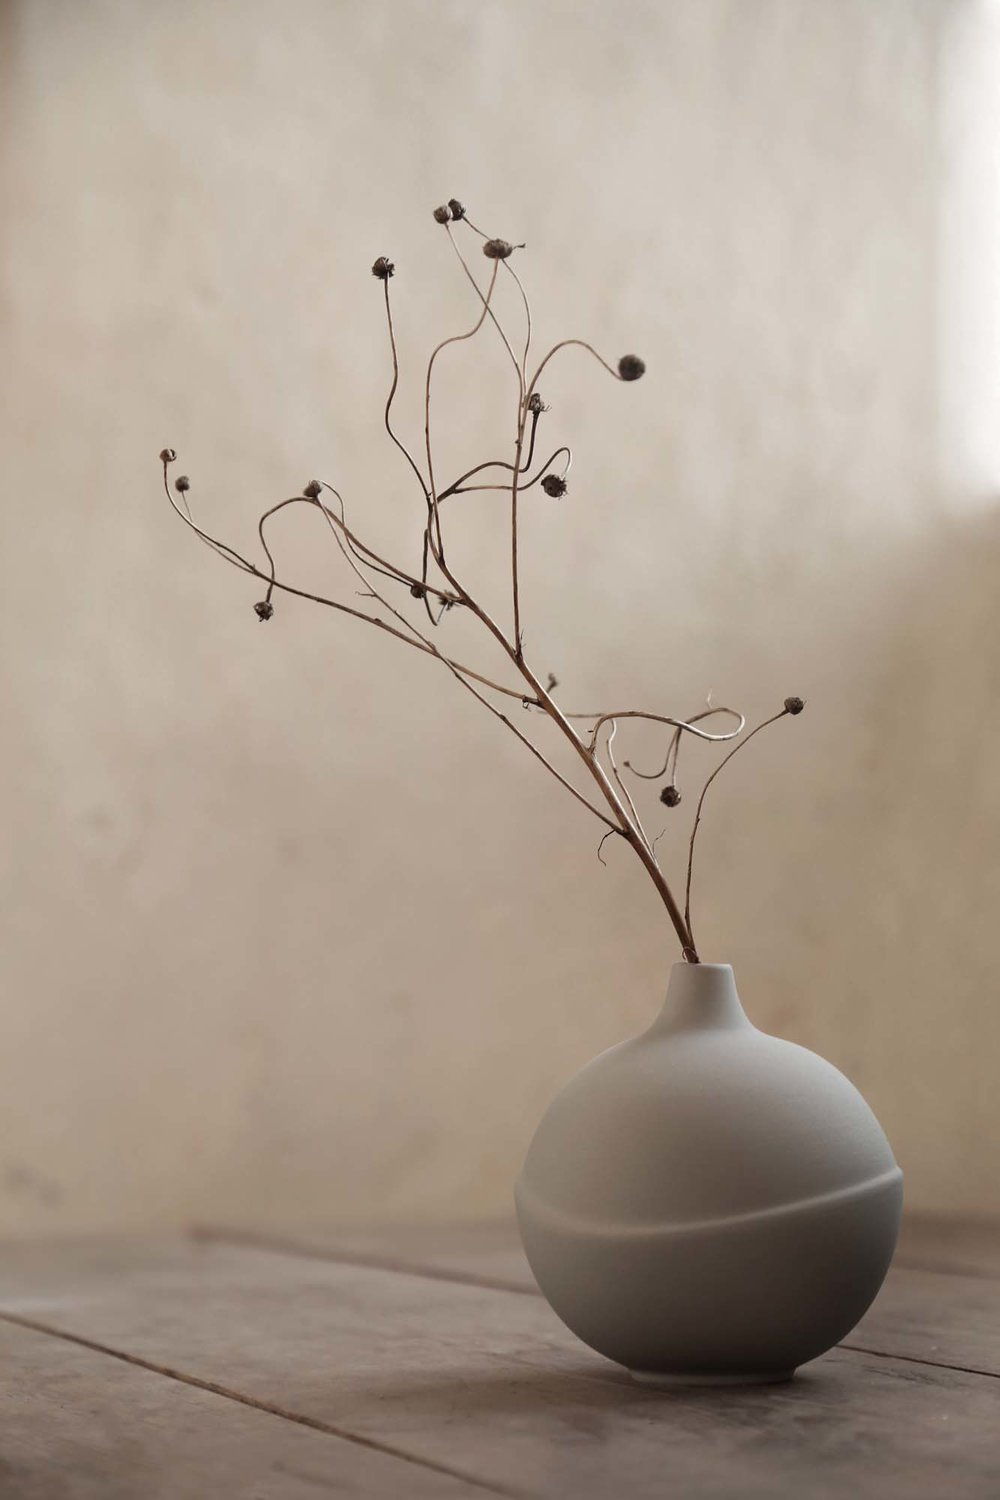 Anna Elza Oscarsson vase photographed by Frida Ramstedt from Trendenser: less is more